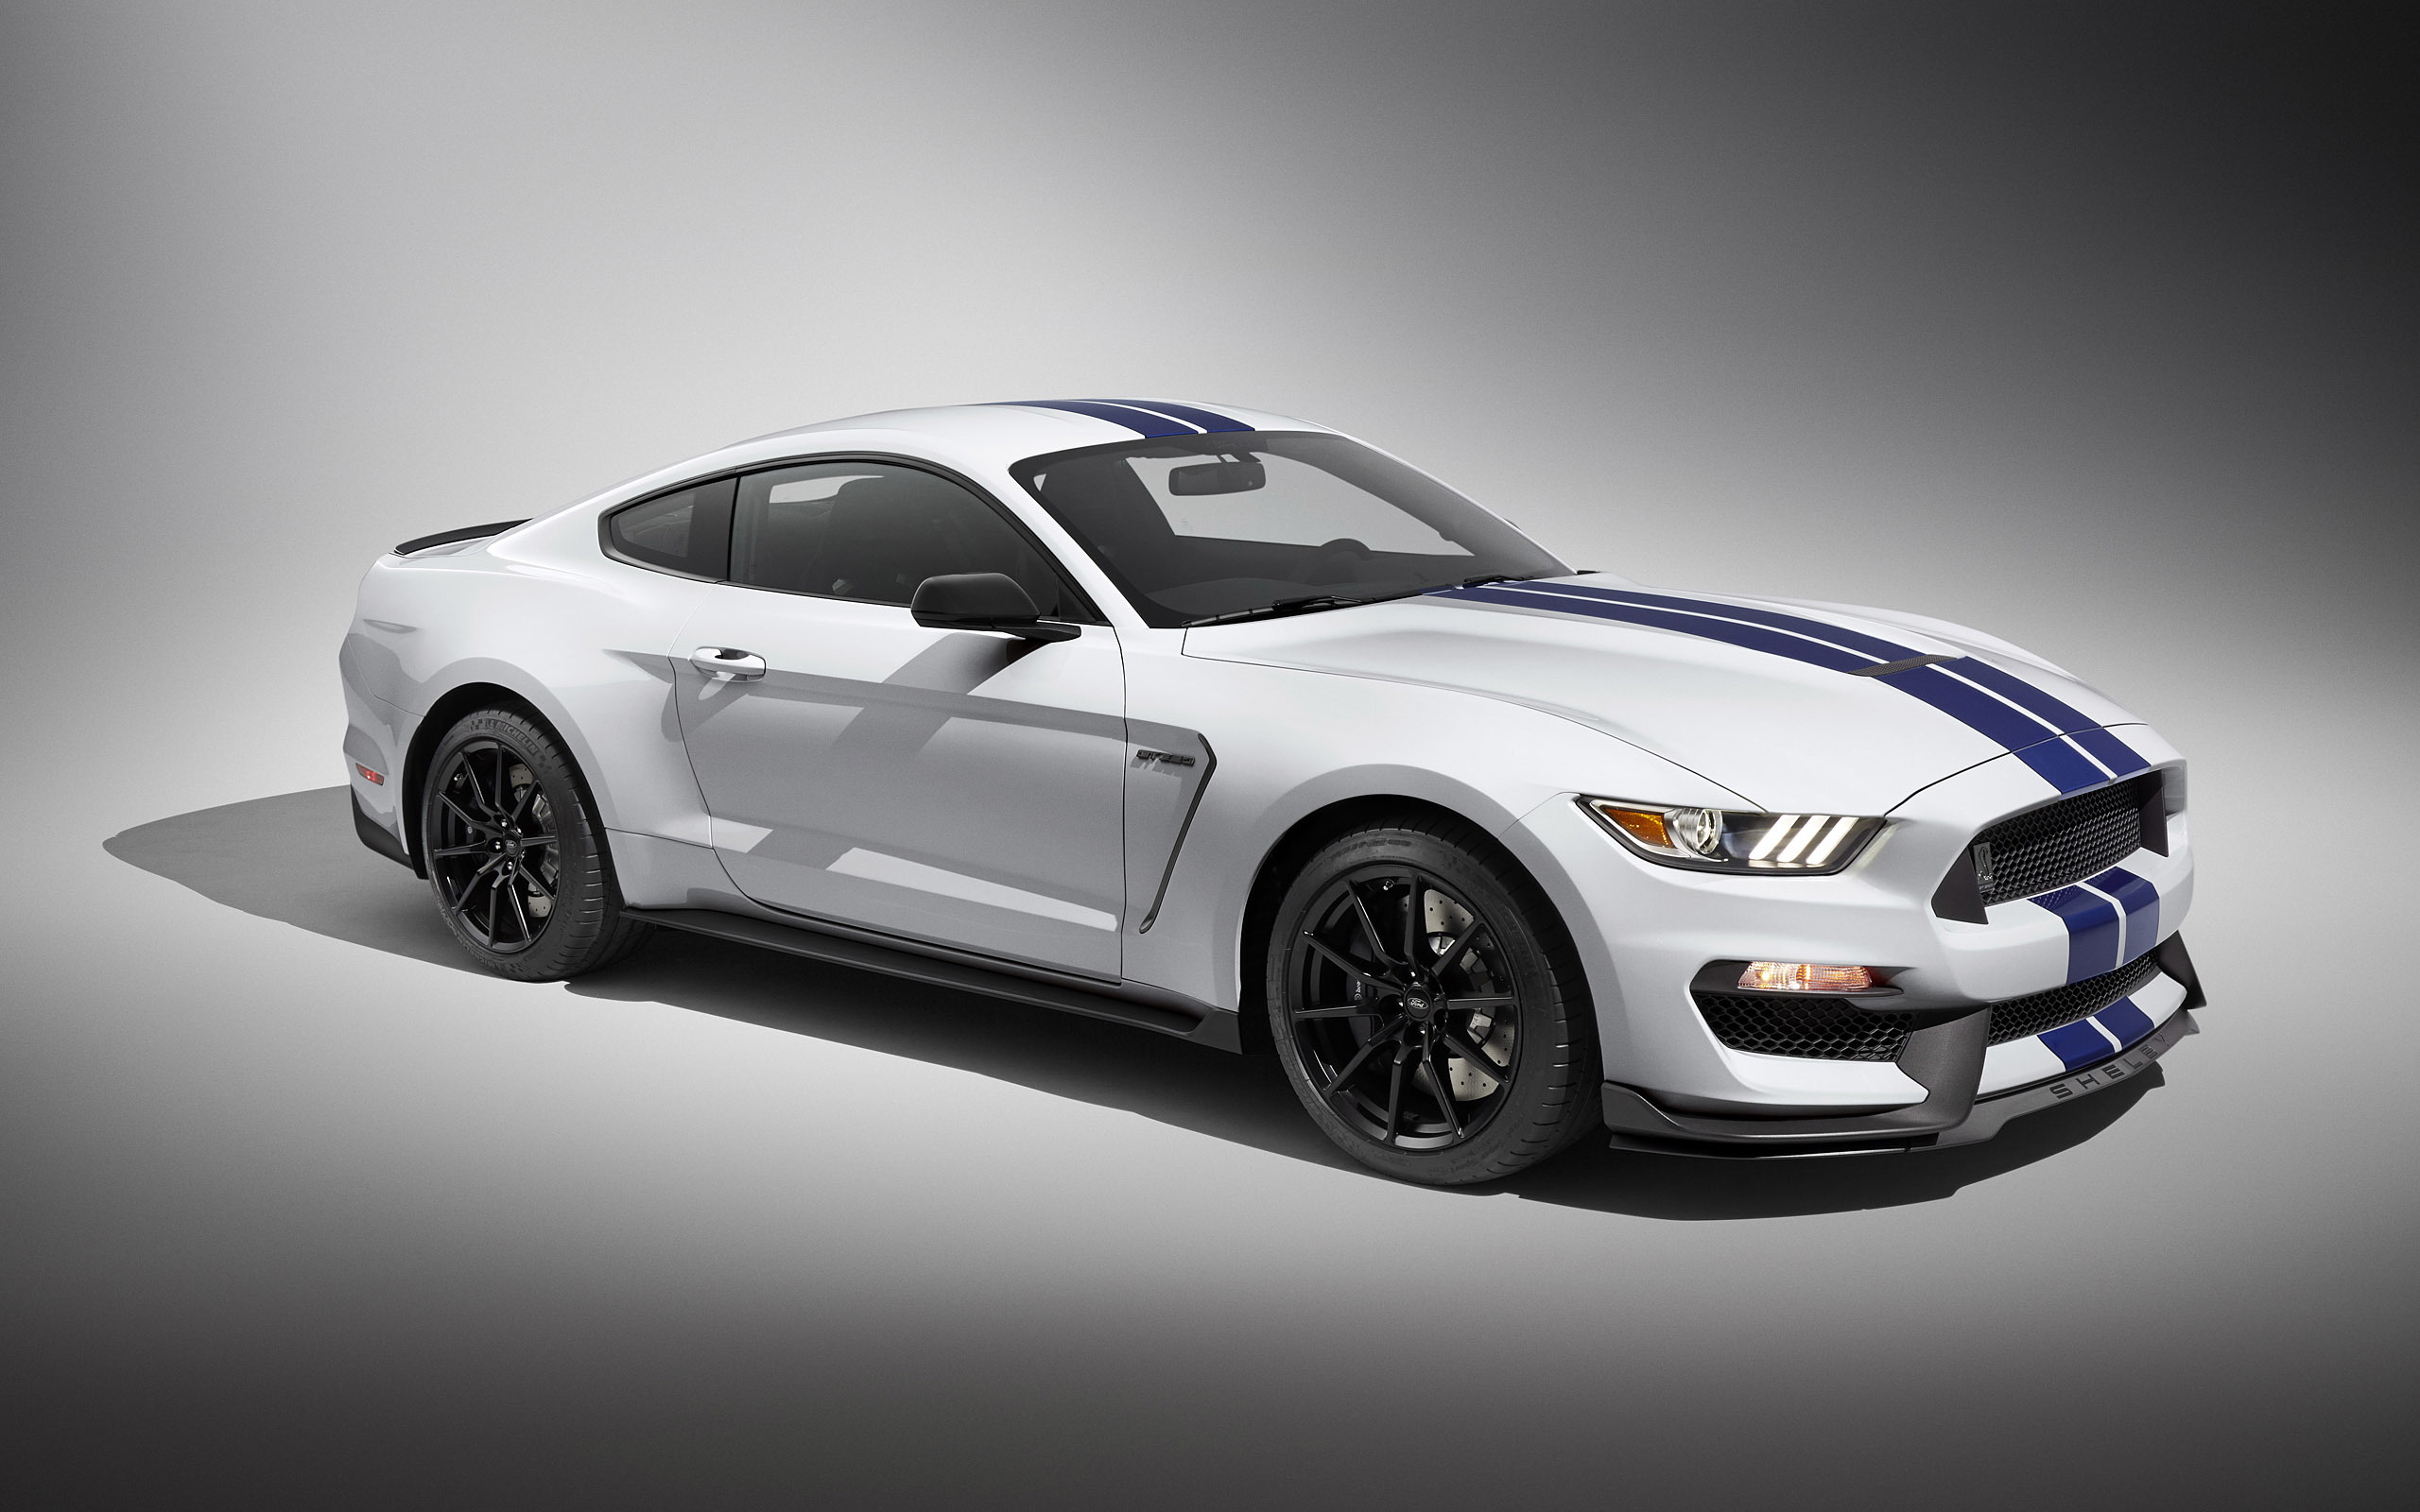 2016 ford mustang shelby gt350 wallpaper photos pictures 2560x1600